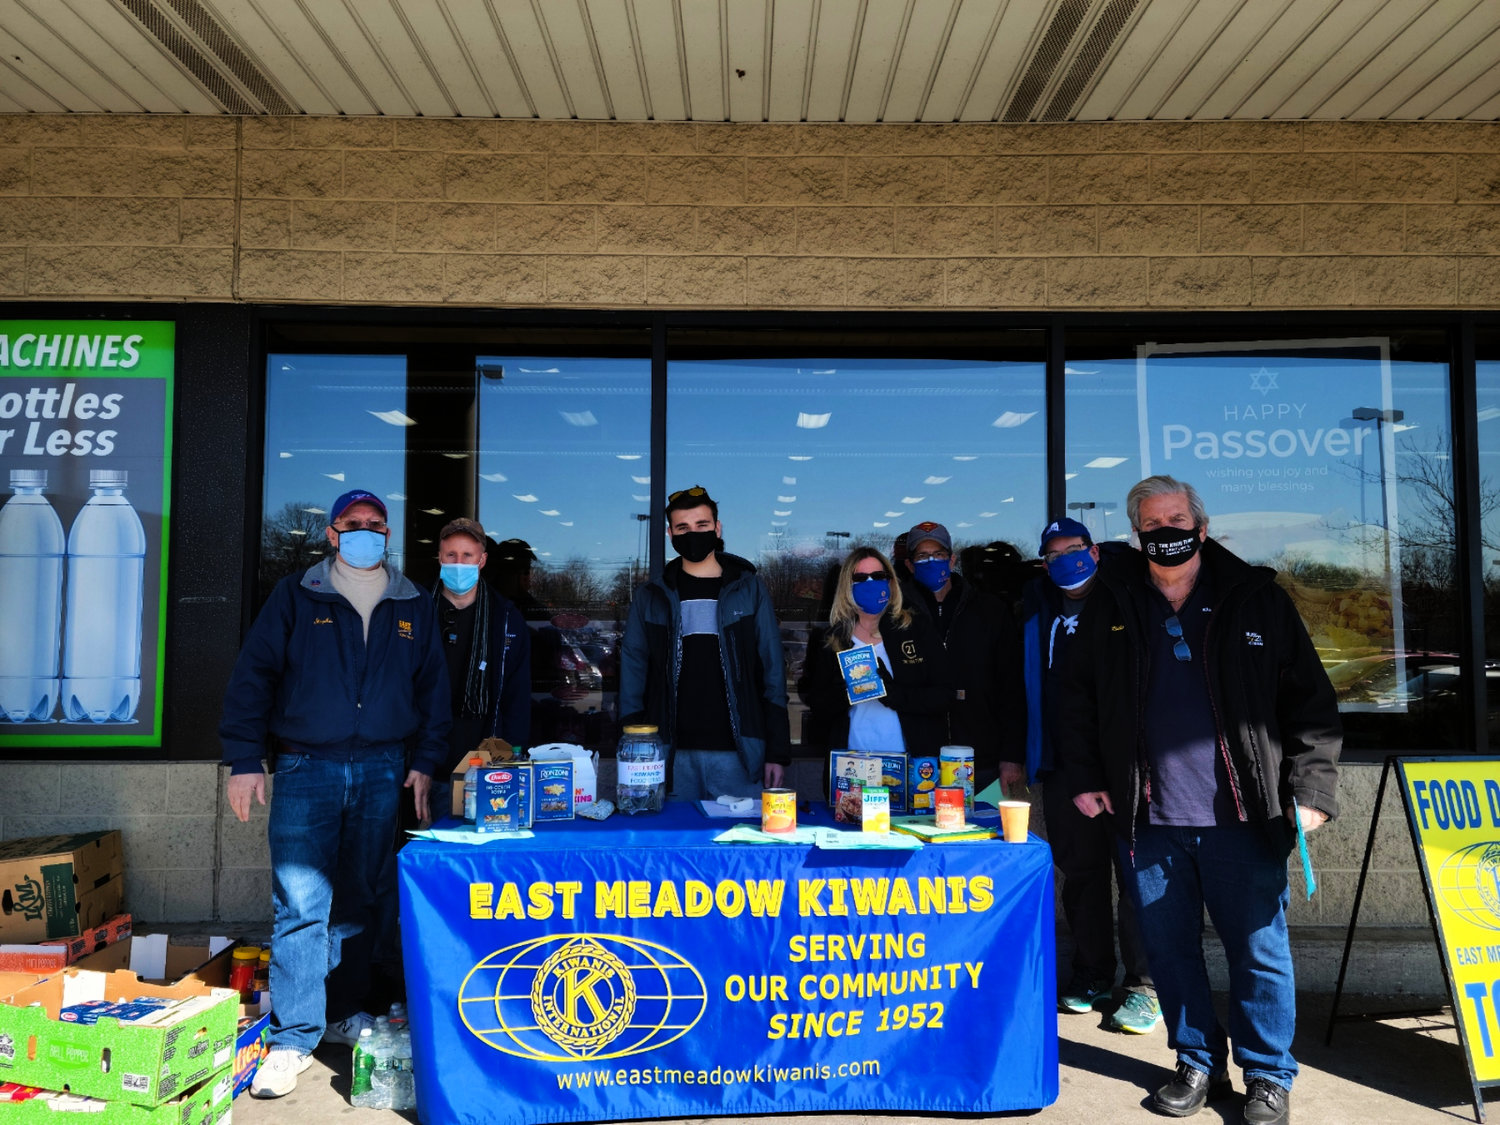 East Meadow Kiwanis gathered outside the Shoprite in Uniondale to collect food for local pantries over the weekend.